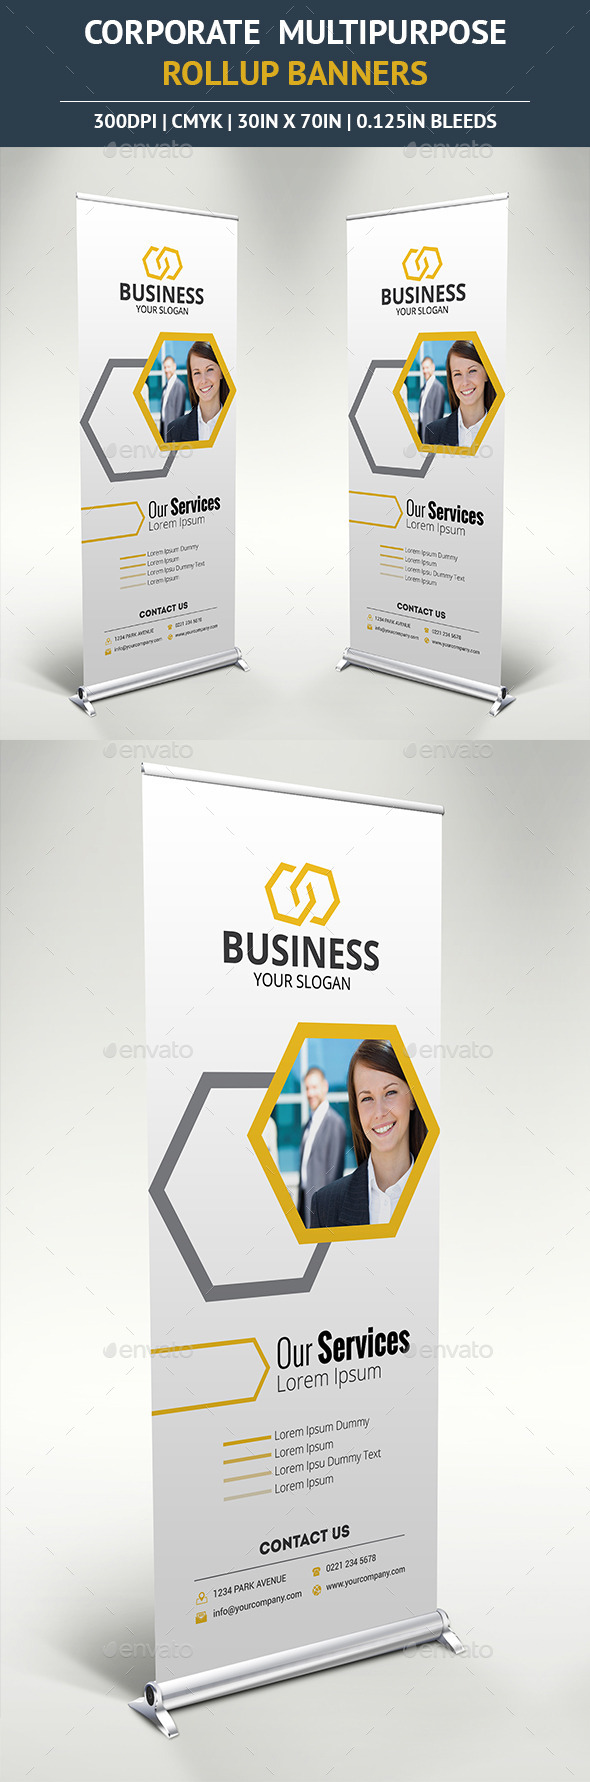 Corporate Rollup Banner vol6 - Signage Print Templates